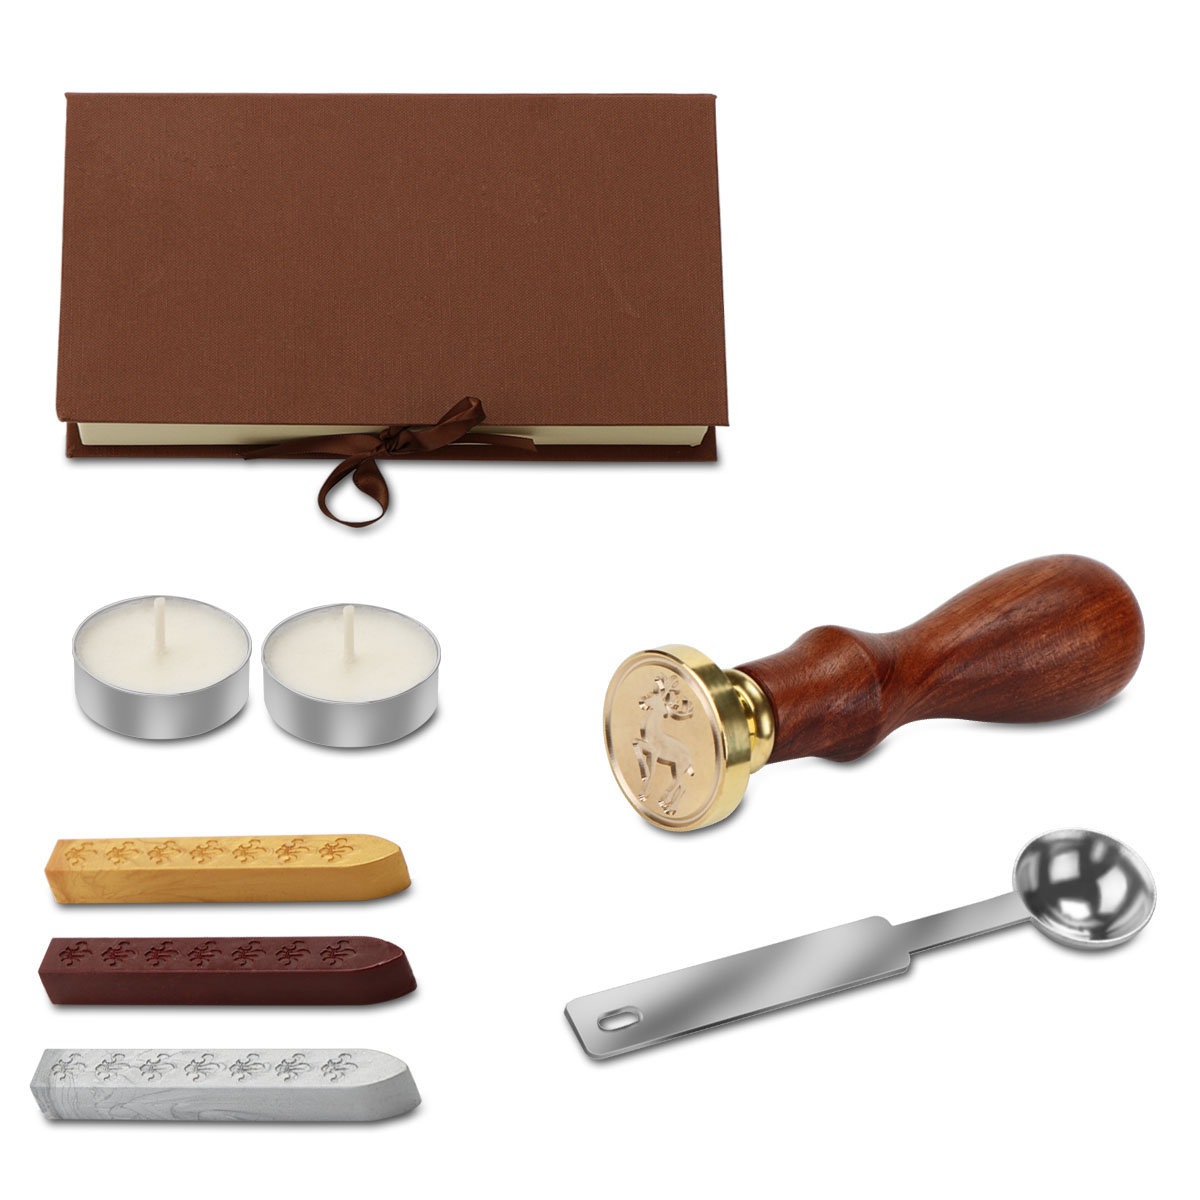 Retro Wax Seal Stamp Kit Wax Seal Stick Spoon Gift Box Set